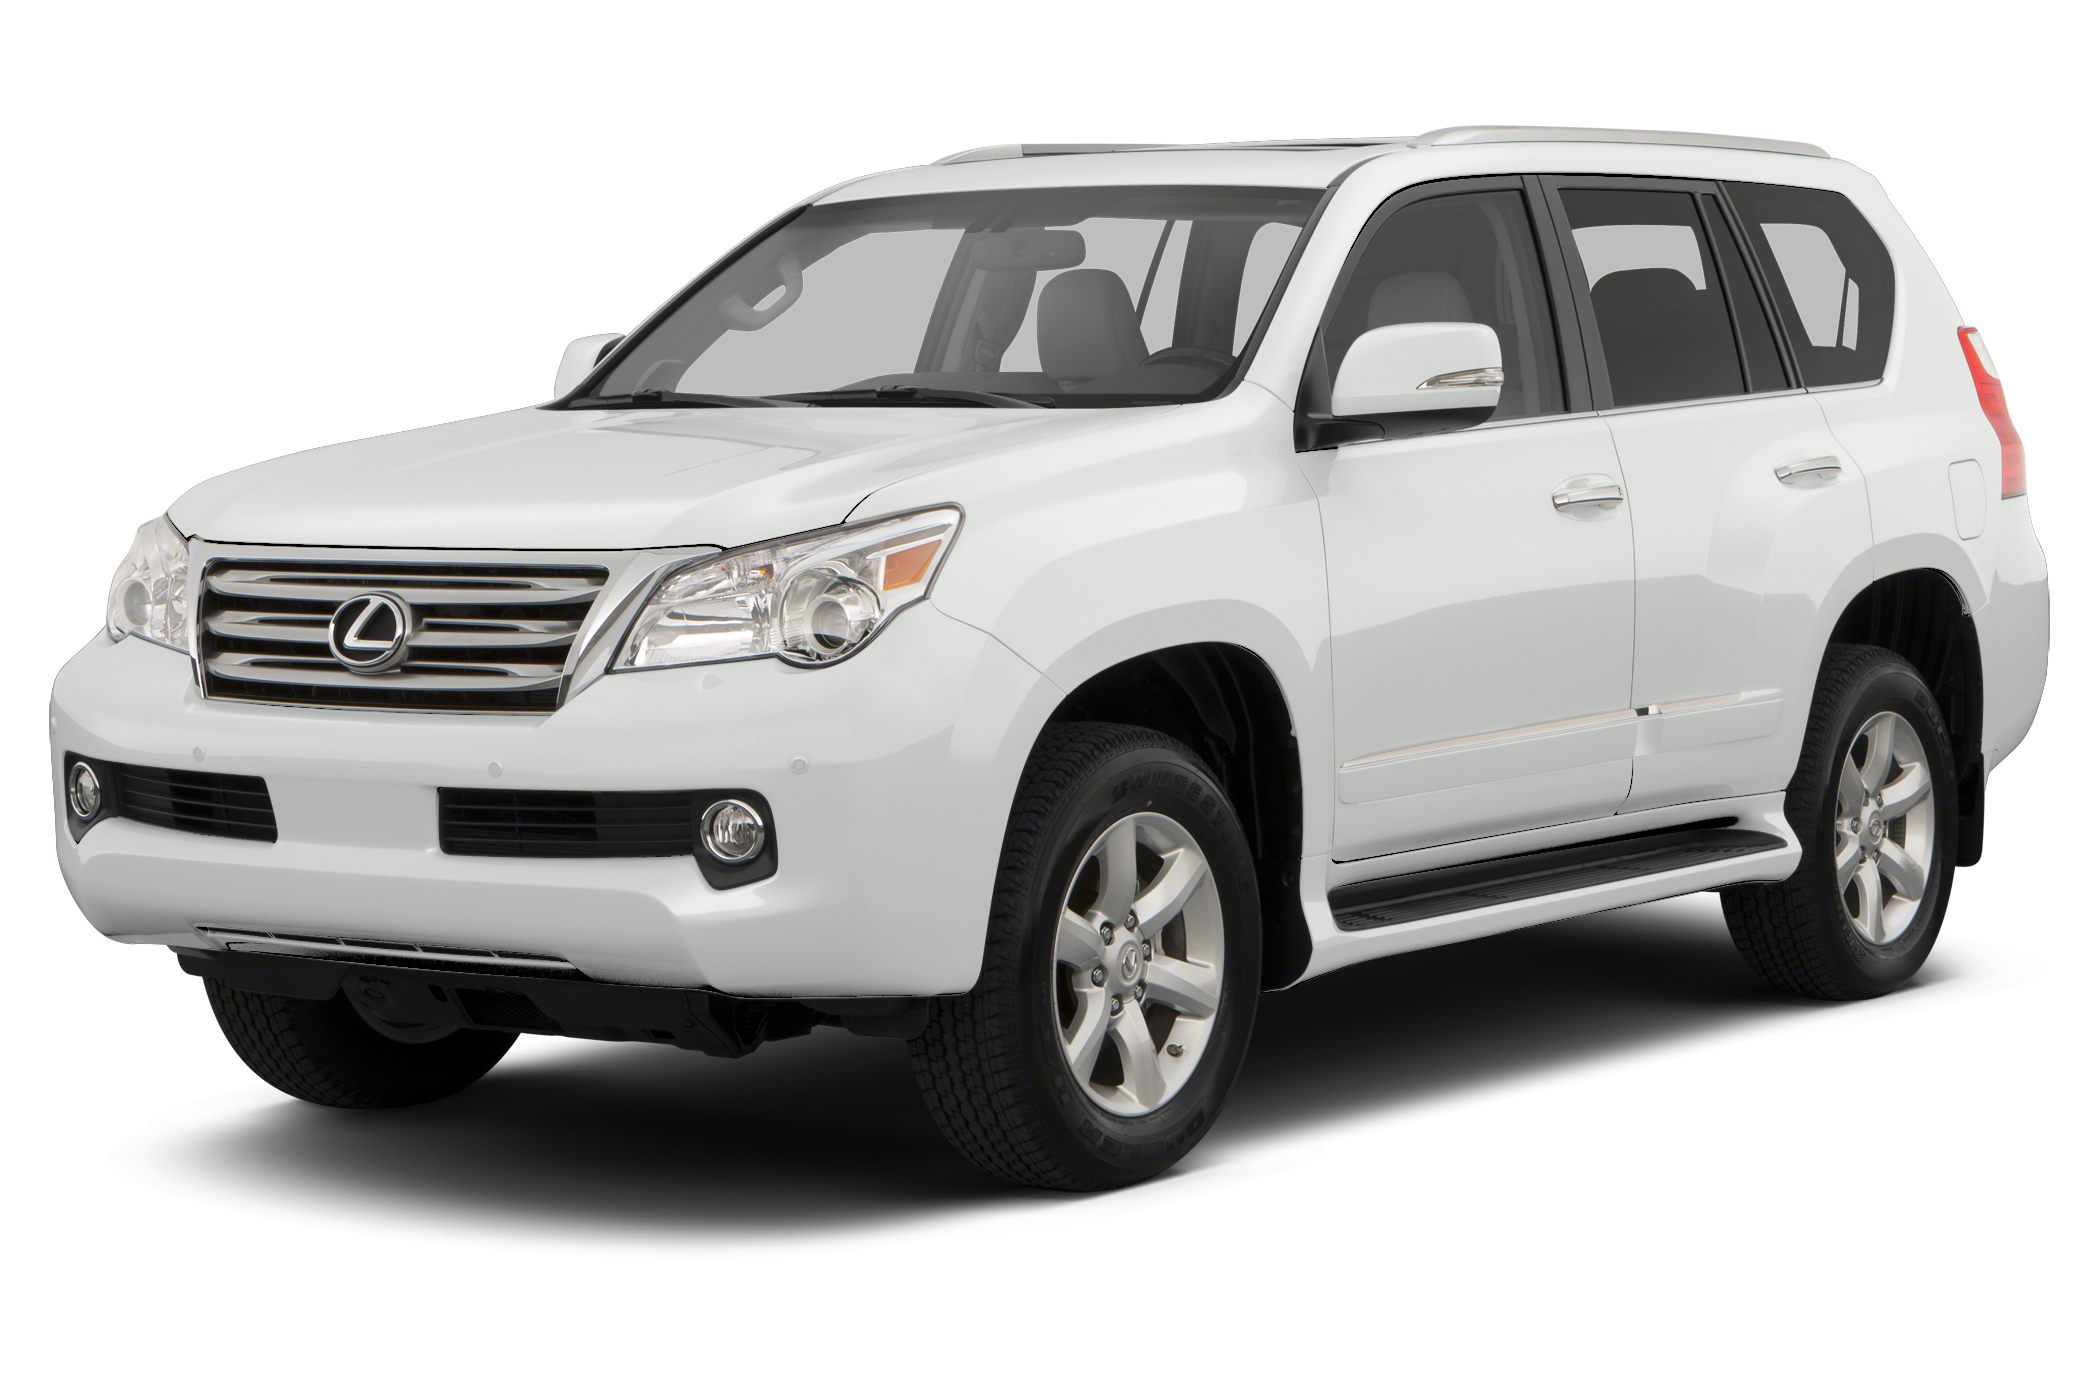 2013 Lexus GX 460 Owners Manual